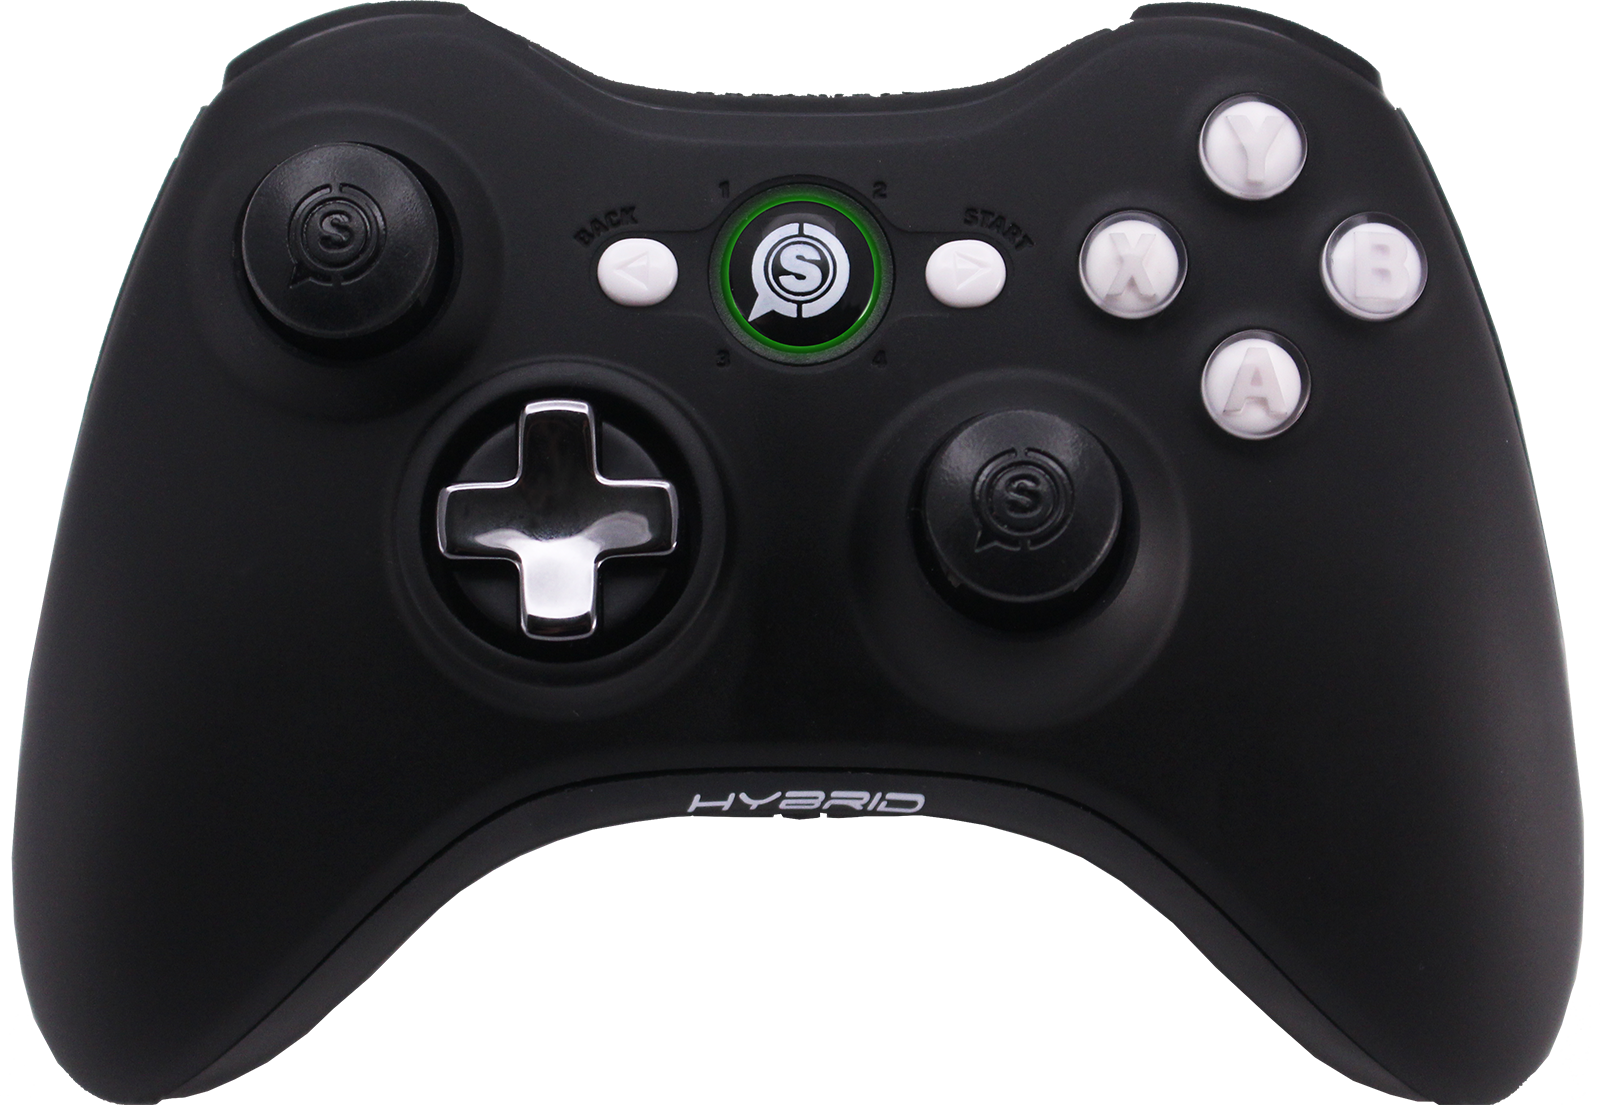 scuf hybrid custom competitive controller for xbox 360 scuf gaming. Black Bedroom Furniture Sets. Home Design Ideas